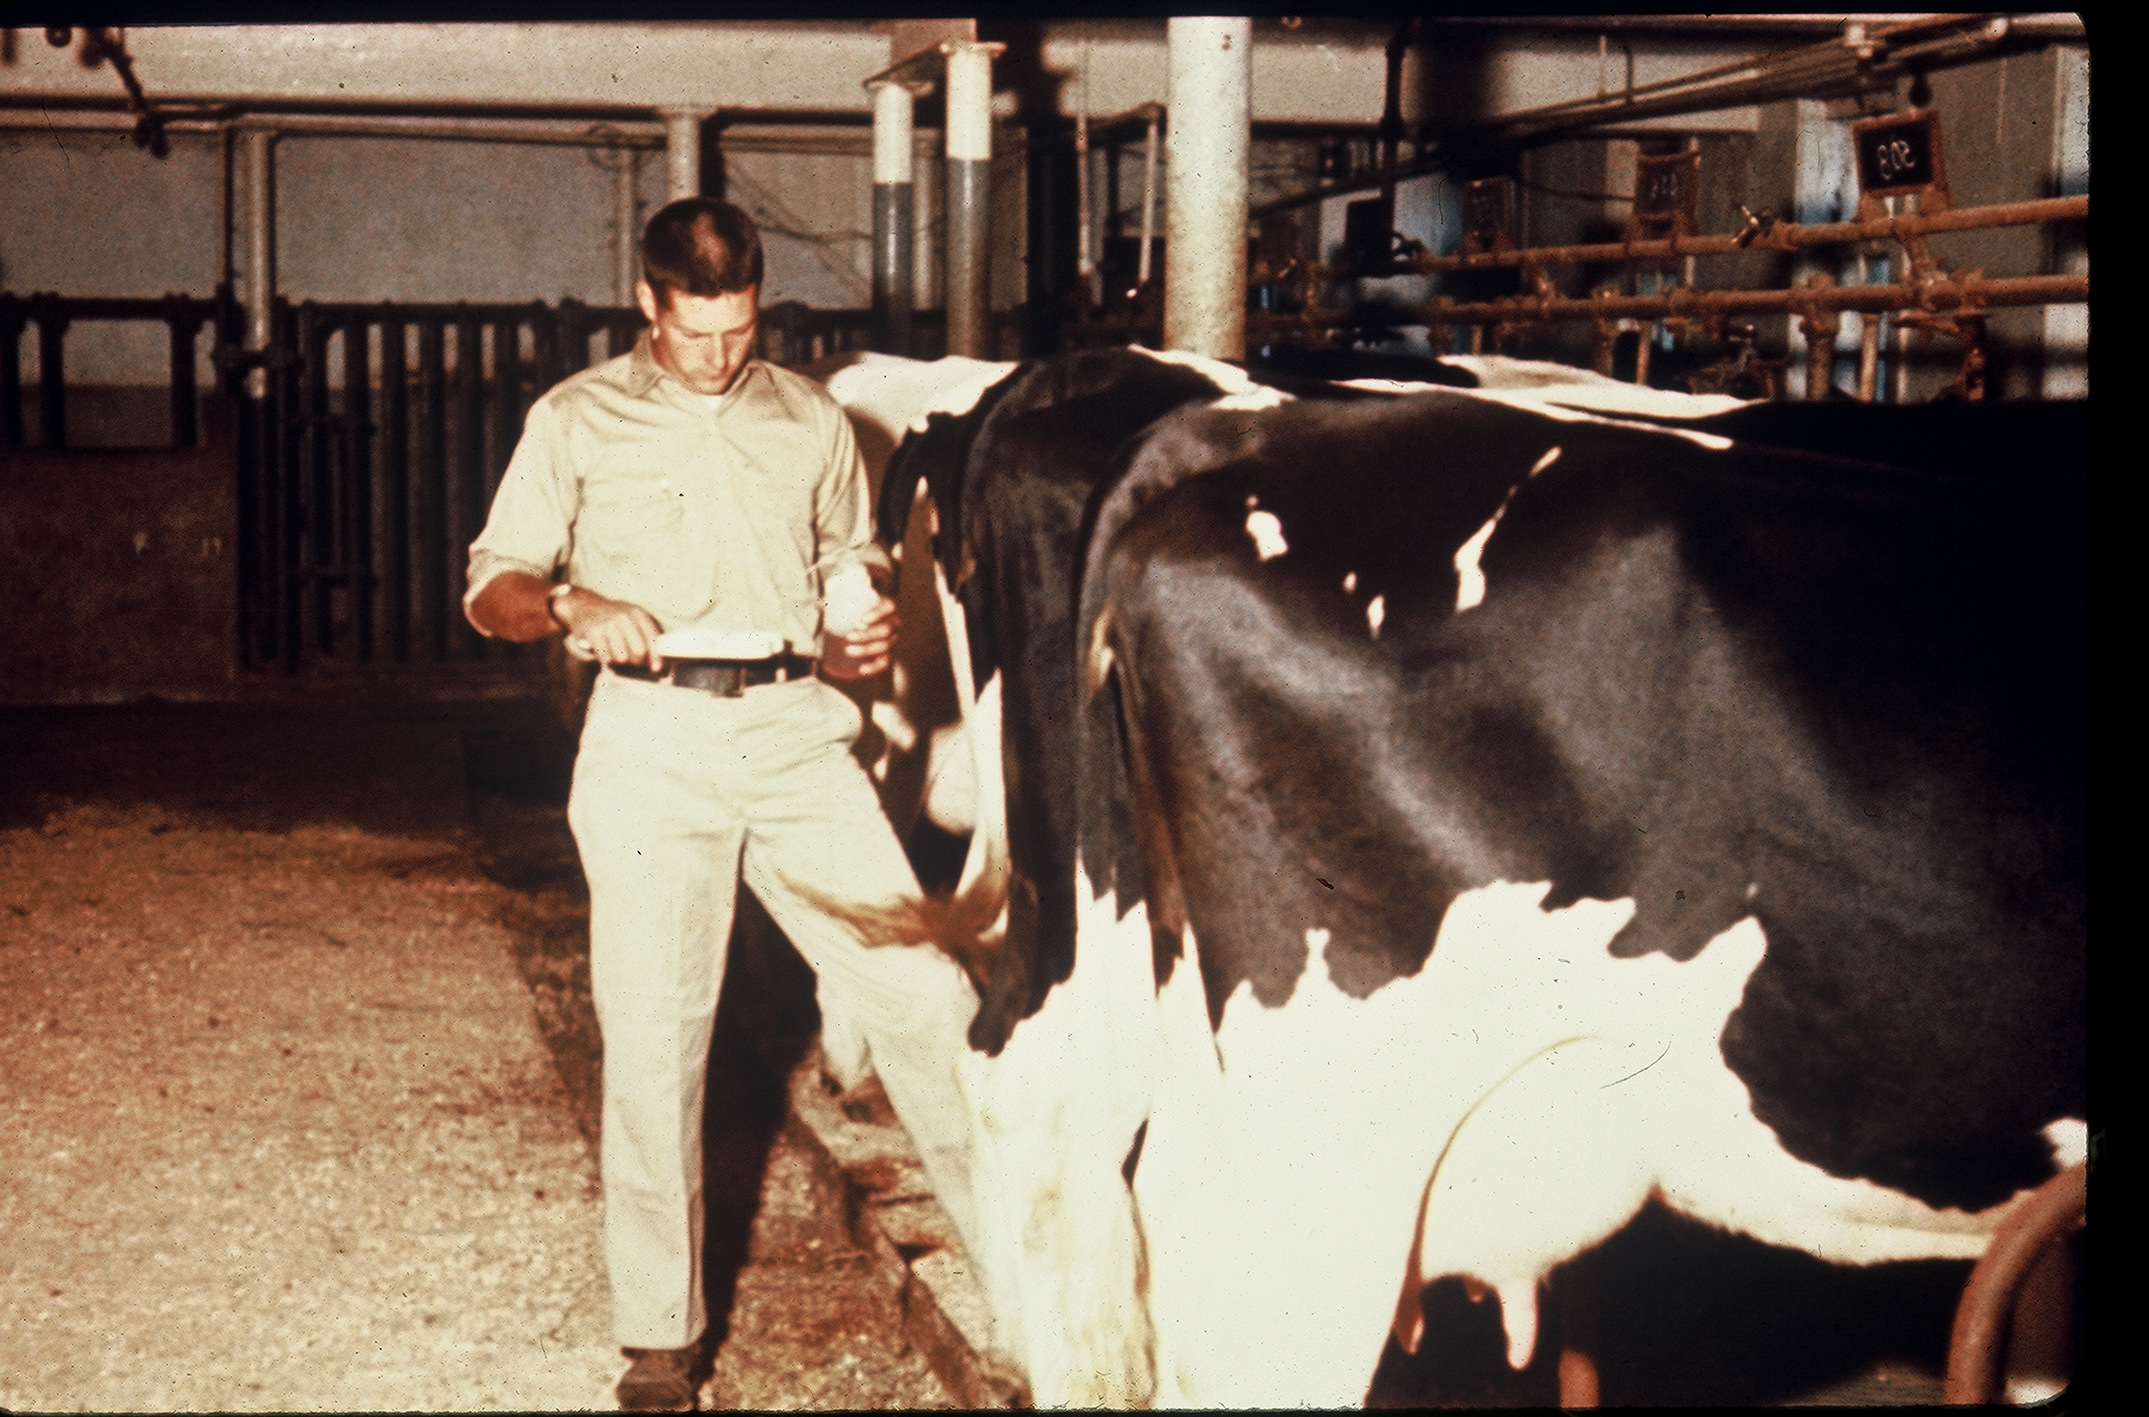 CRF Dairy Research Farm 1960's - Ellington, Connecticut